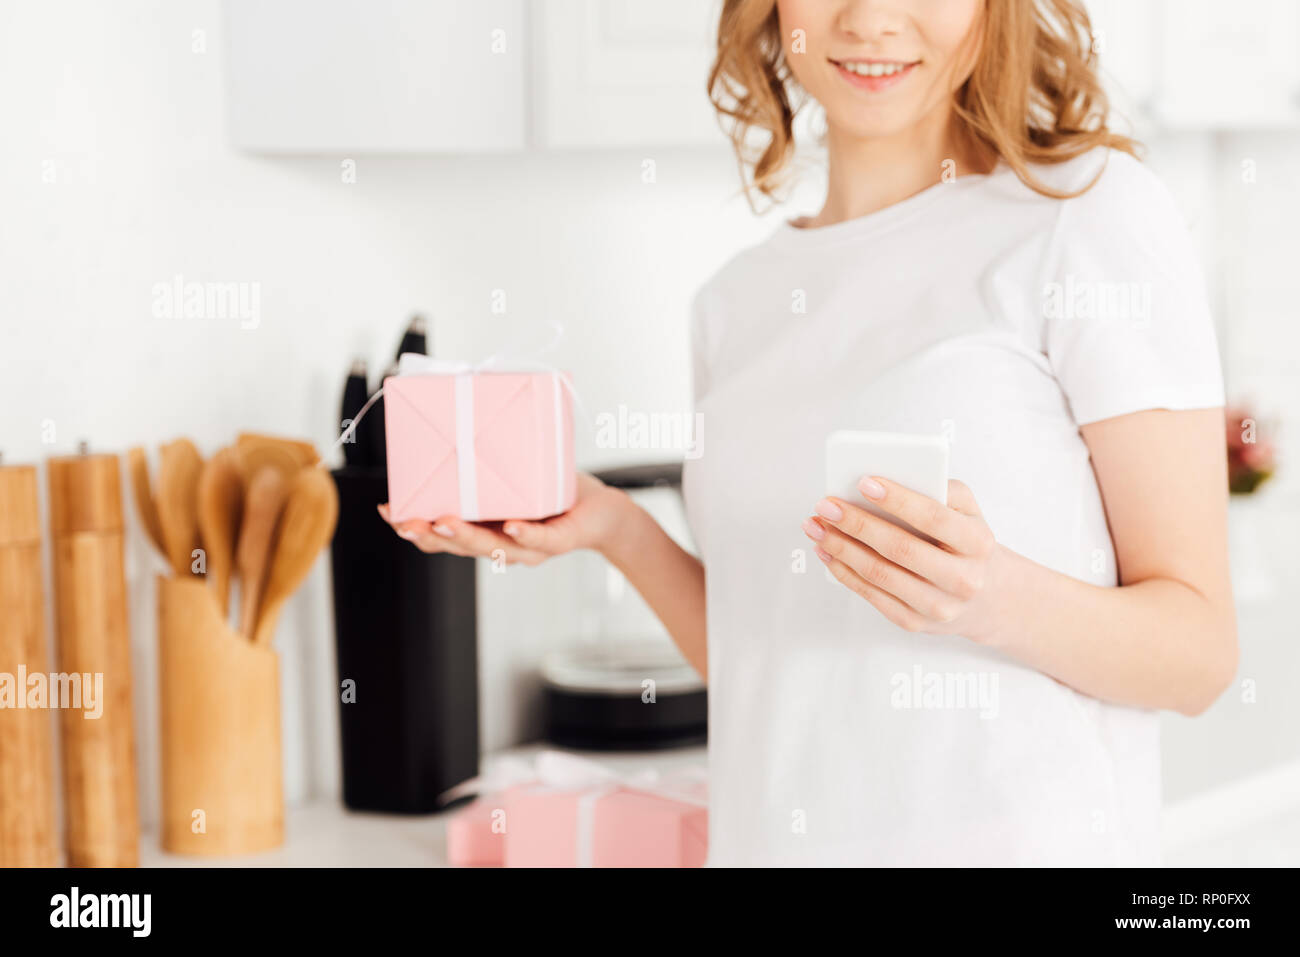 cropped view of girl in pajamas with gift box using smartphone in kitchen - Stock Image